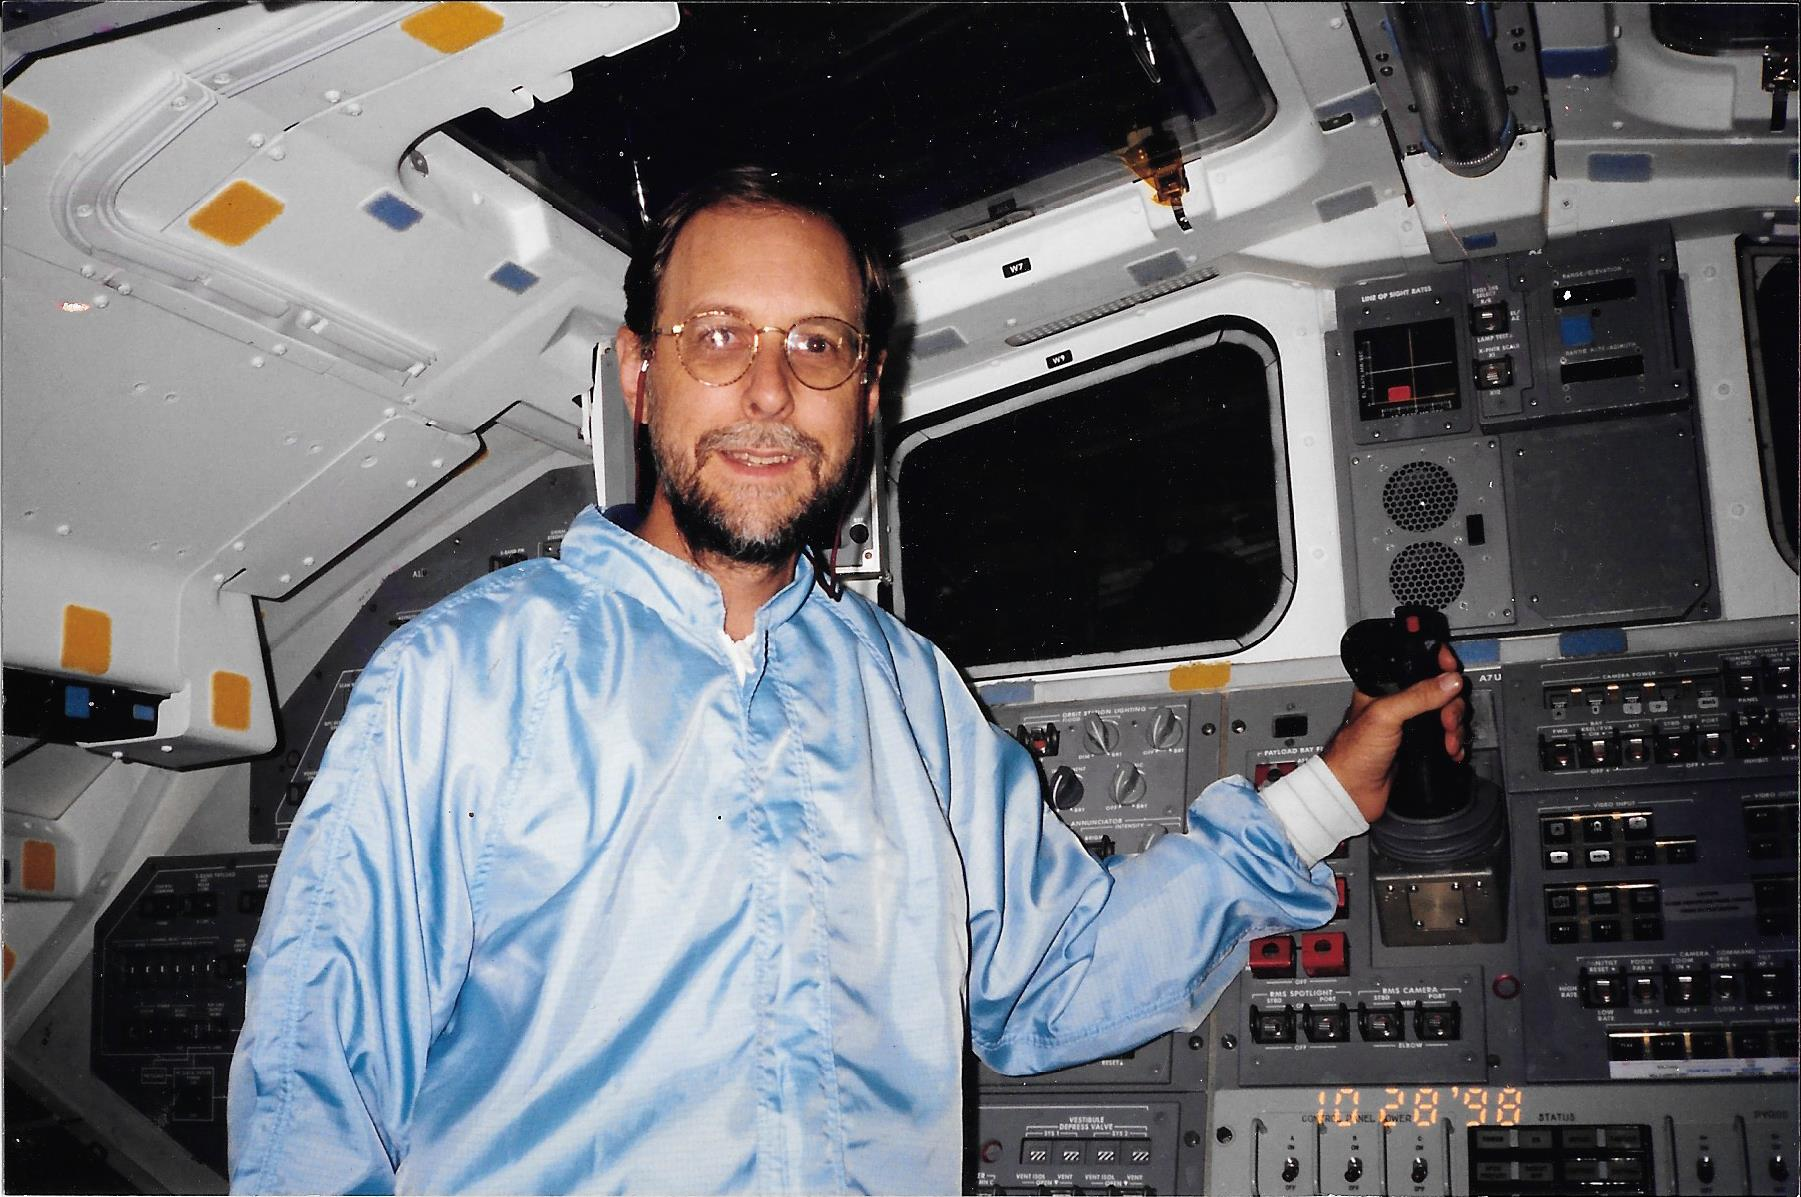 "On the flight deck of the Orbiter Atlantis, in a rare shot without an ""eyes only� hood or gloves. Due to my excessive hairiness, I was normally required to wear a hood whenever on board!"